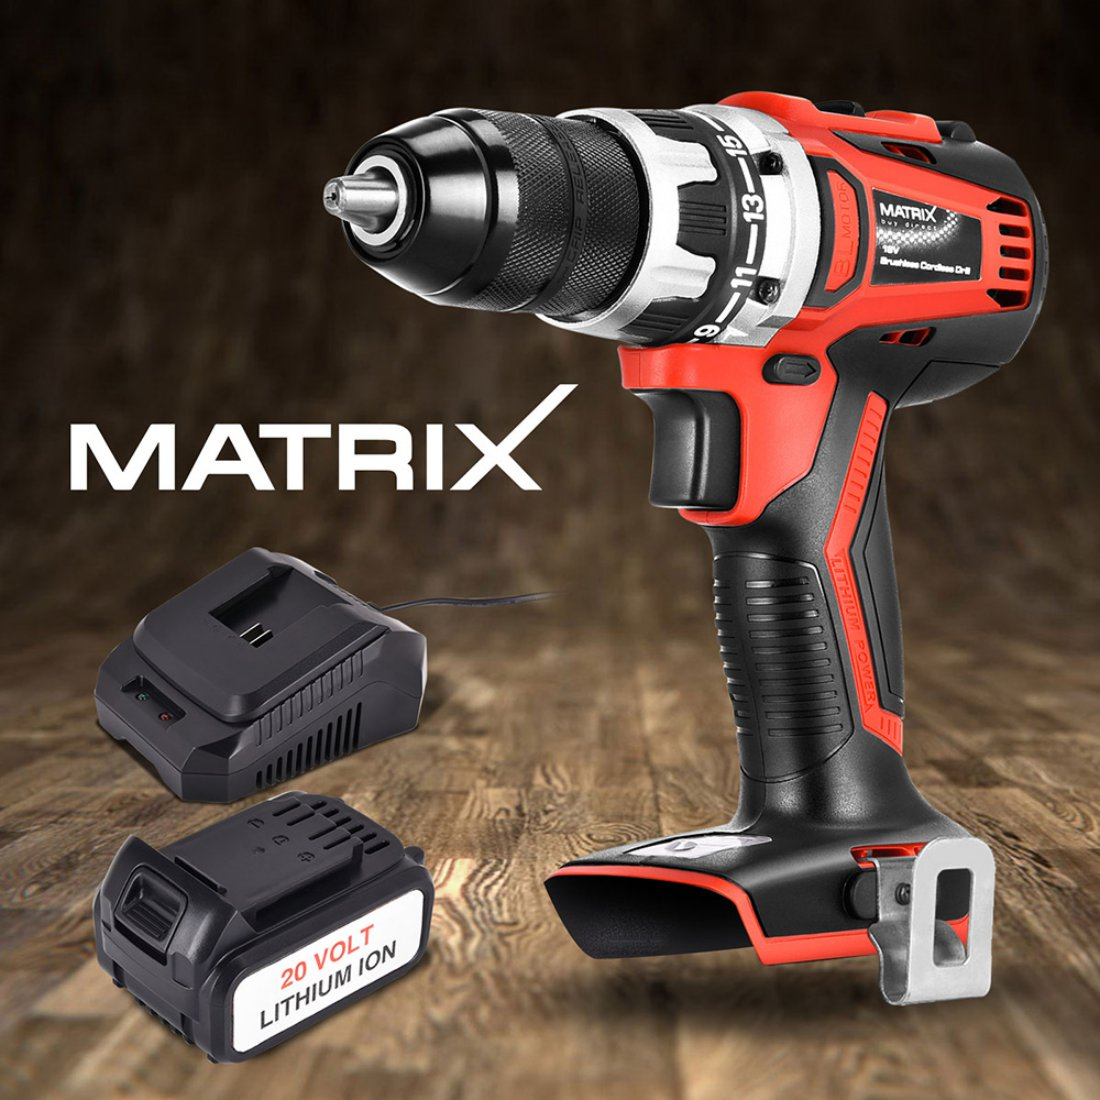 NEW Matrix 20V Brushless Cordless Drill 4.0ah Li-Ion Battery Charger Power Tool